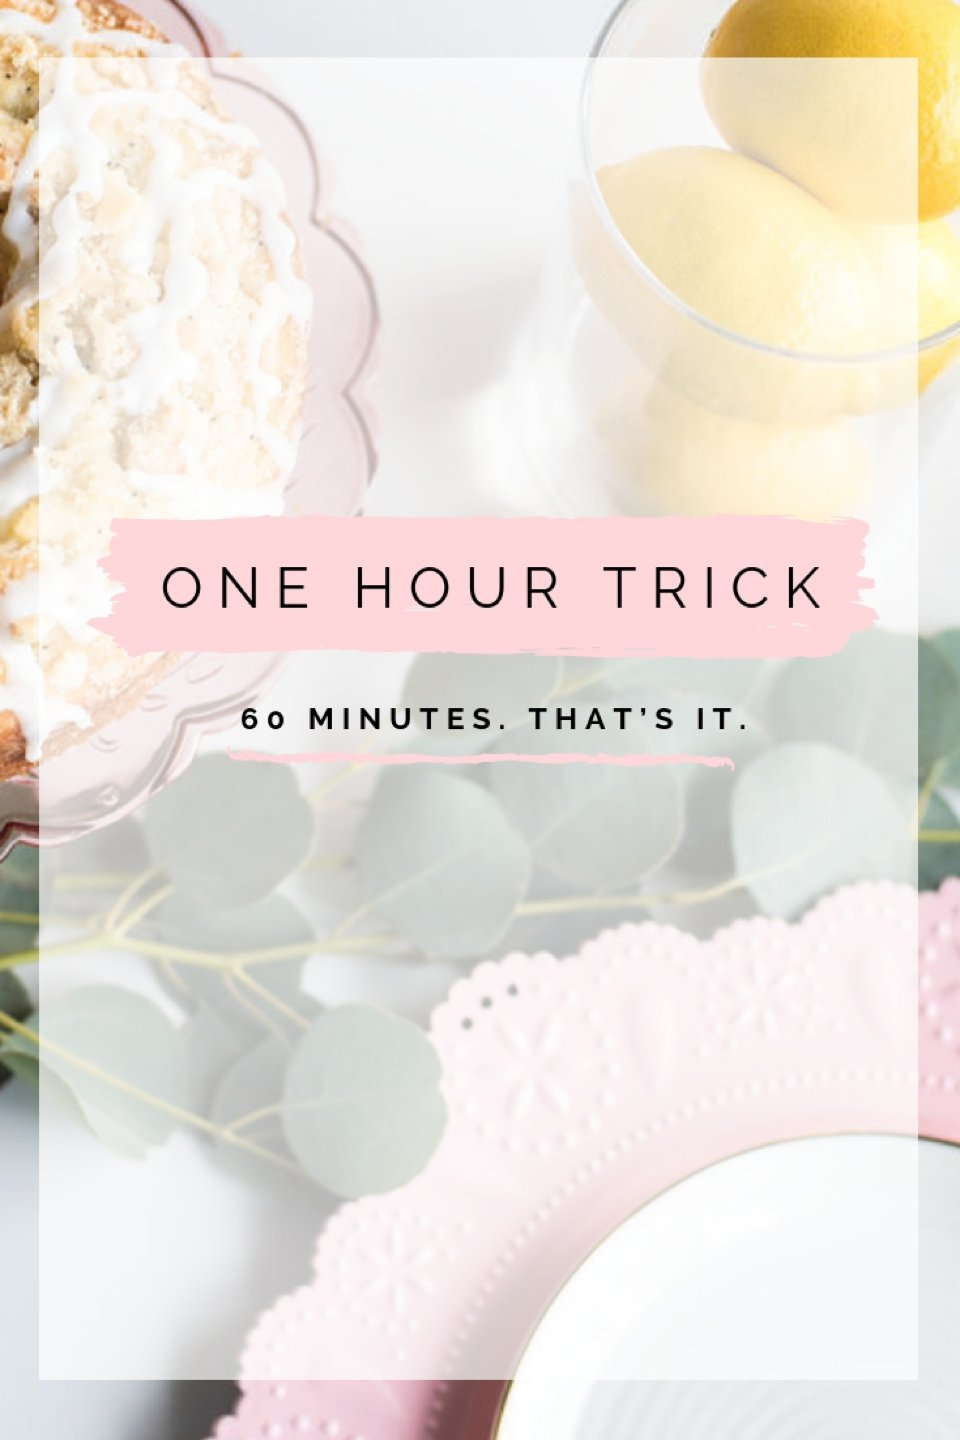 Female entrepreneur tips for getting work done in 60 minutes.